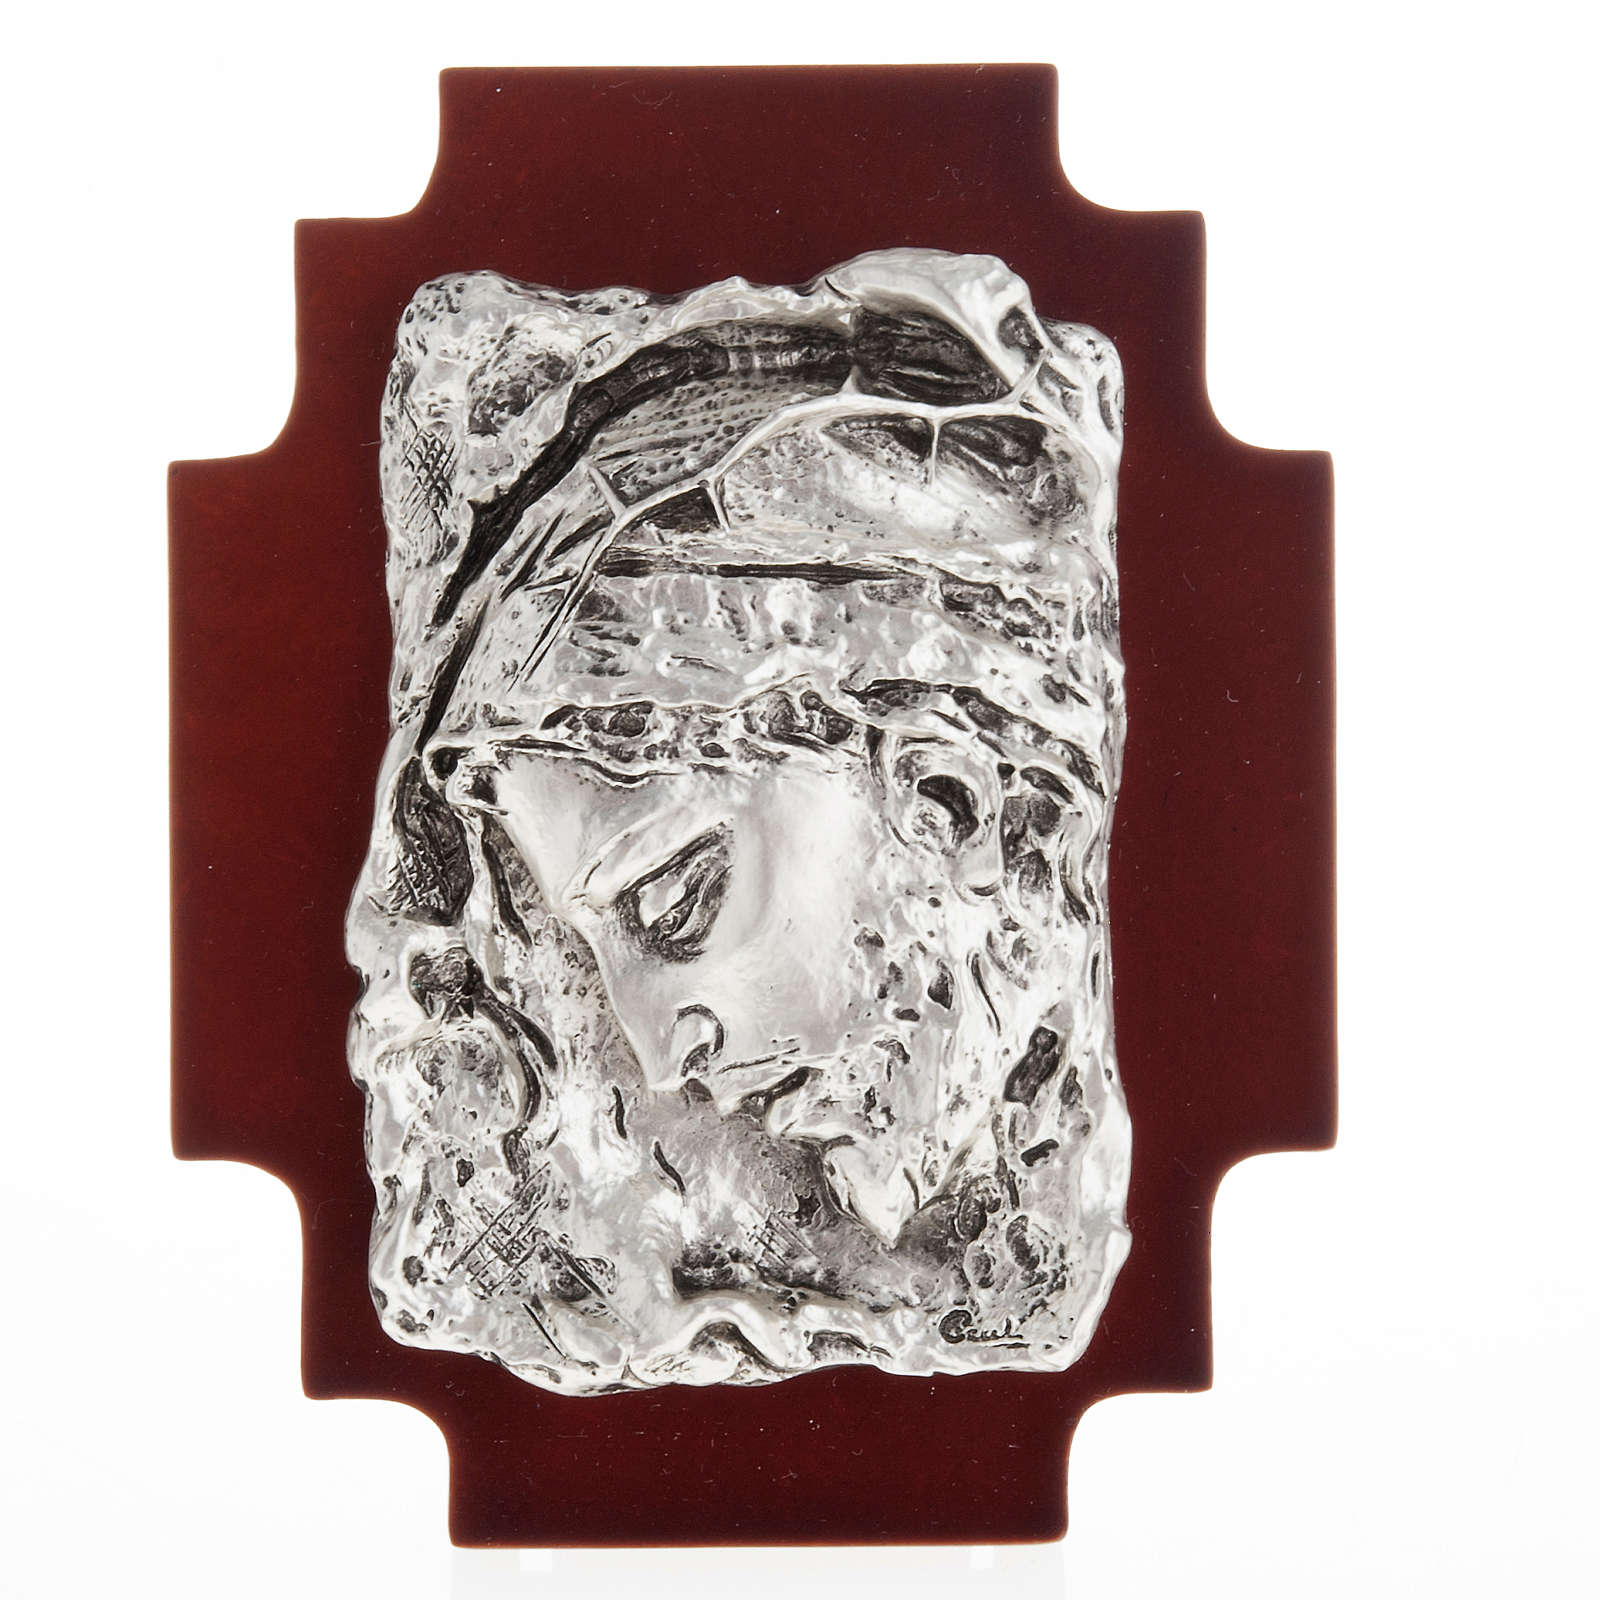 Bas-relief, face of Christ in silver metal 4